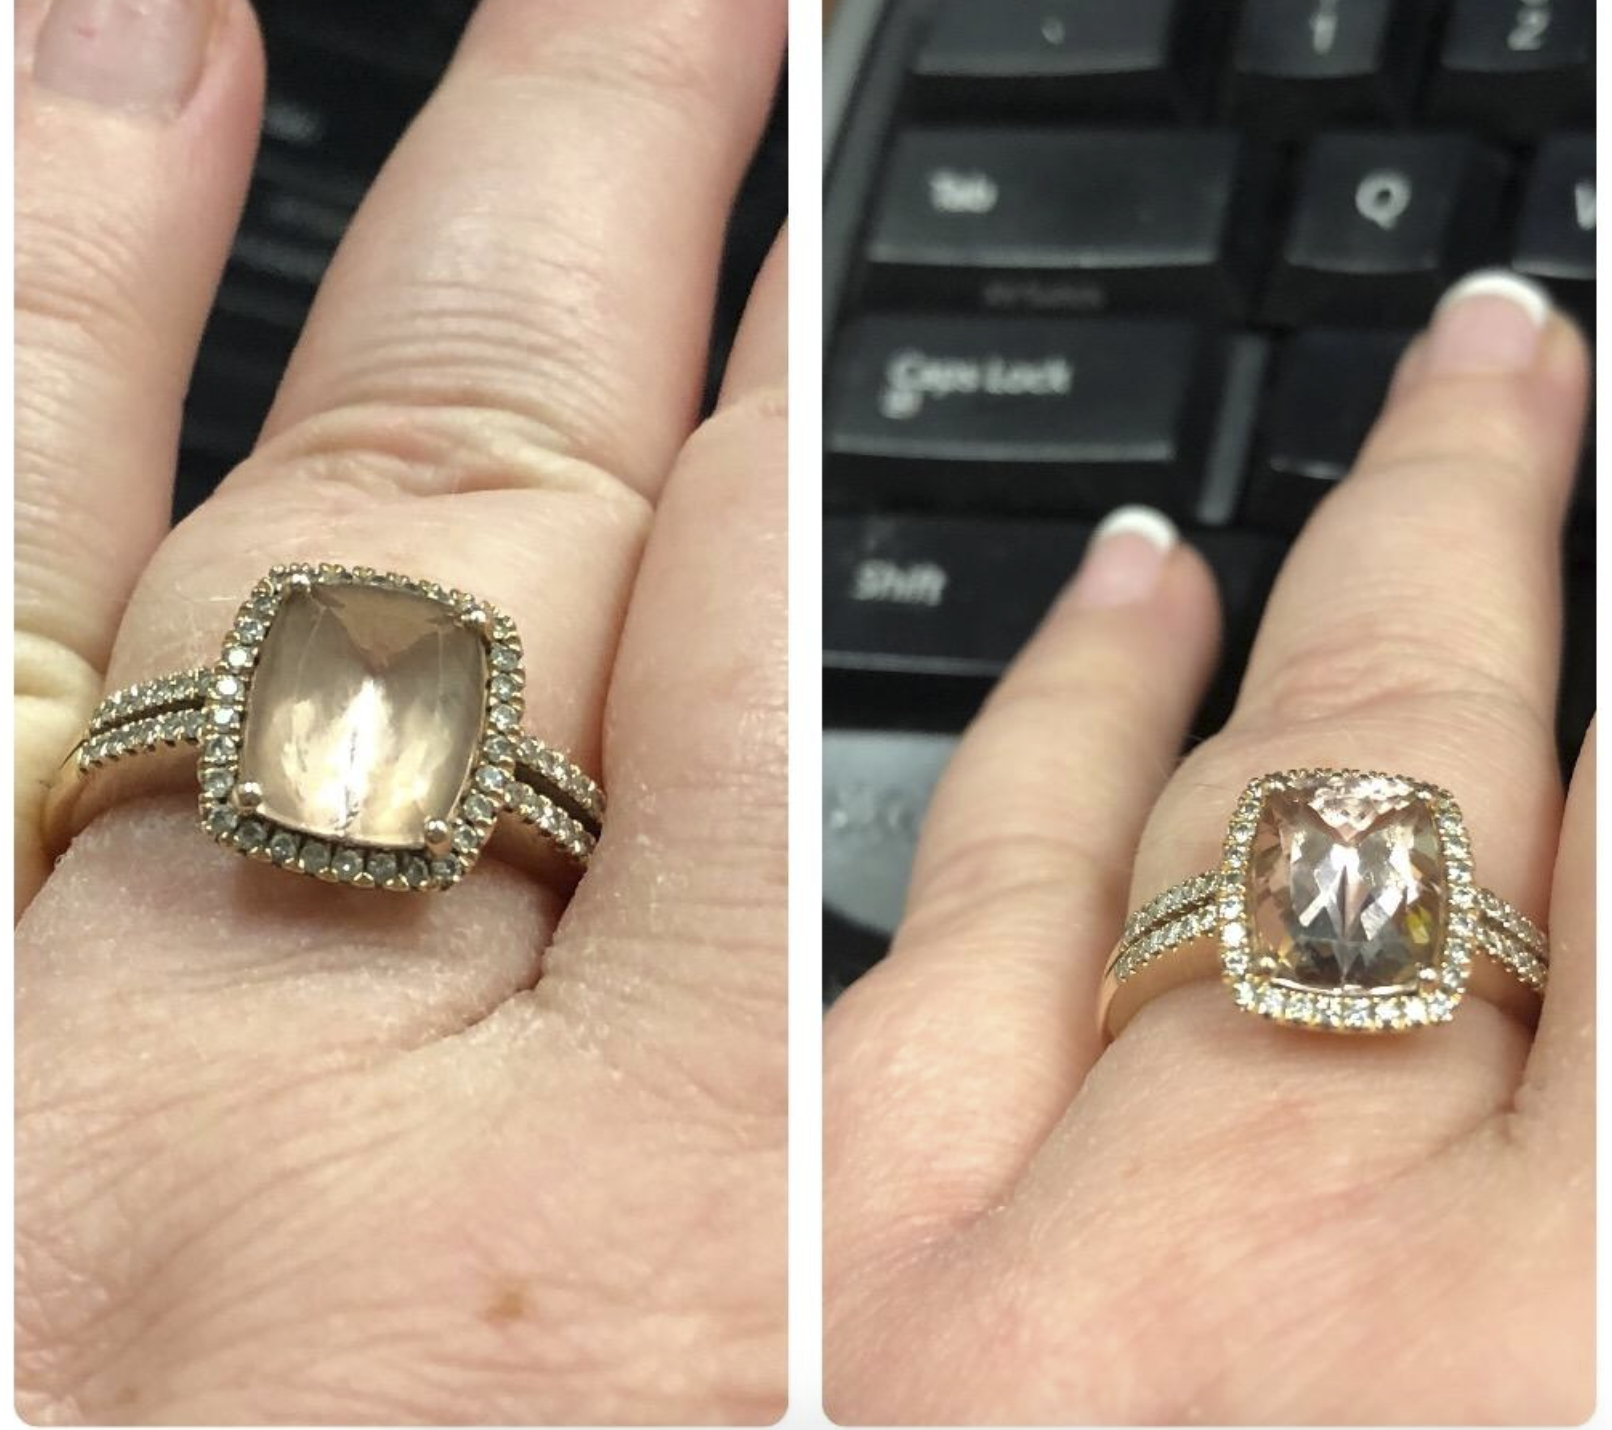 split photo with the left image showing a reviewer's hand with a diamond ring that looks kind of cloudy and the right image showing the same reviewer's ring after a cleaning and now it's looks nearly clear